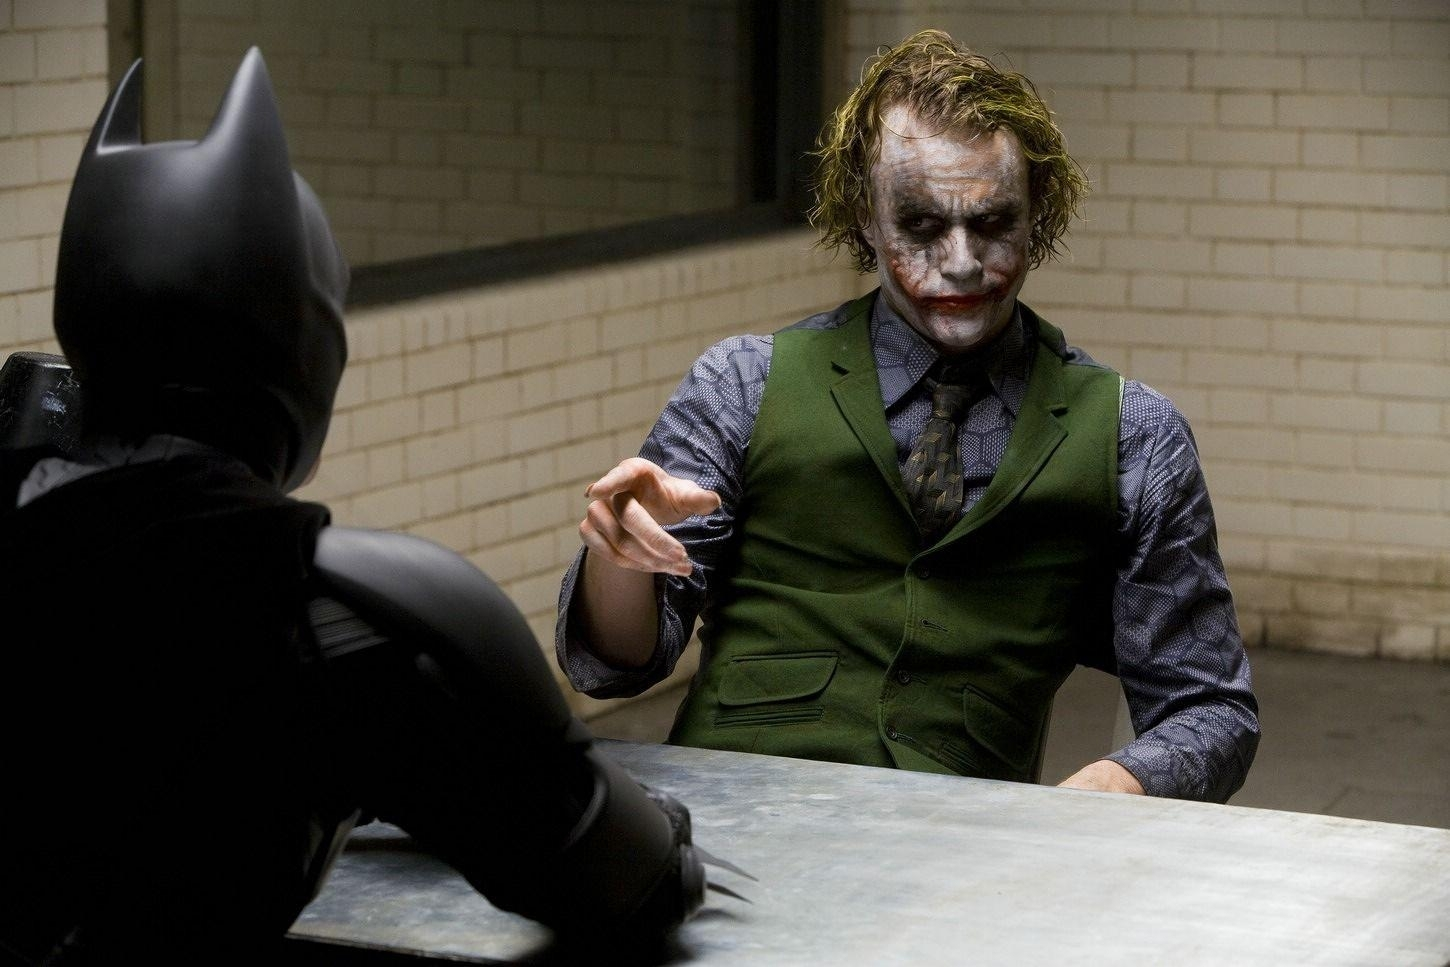 heath ledger's most brutal joker scene in the dark knight was real